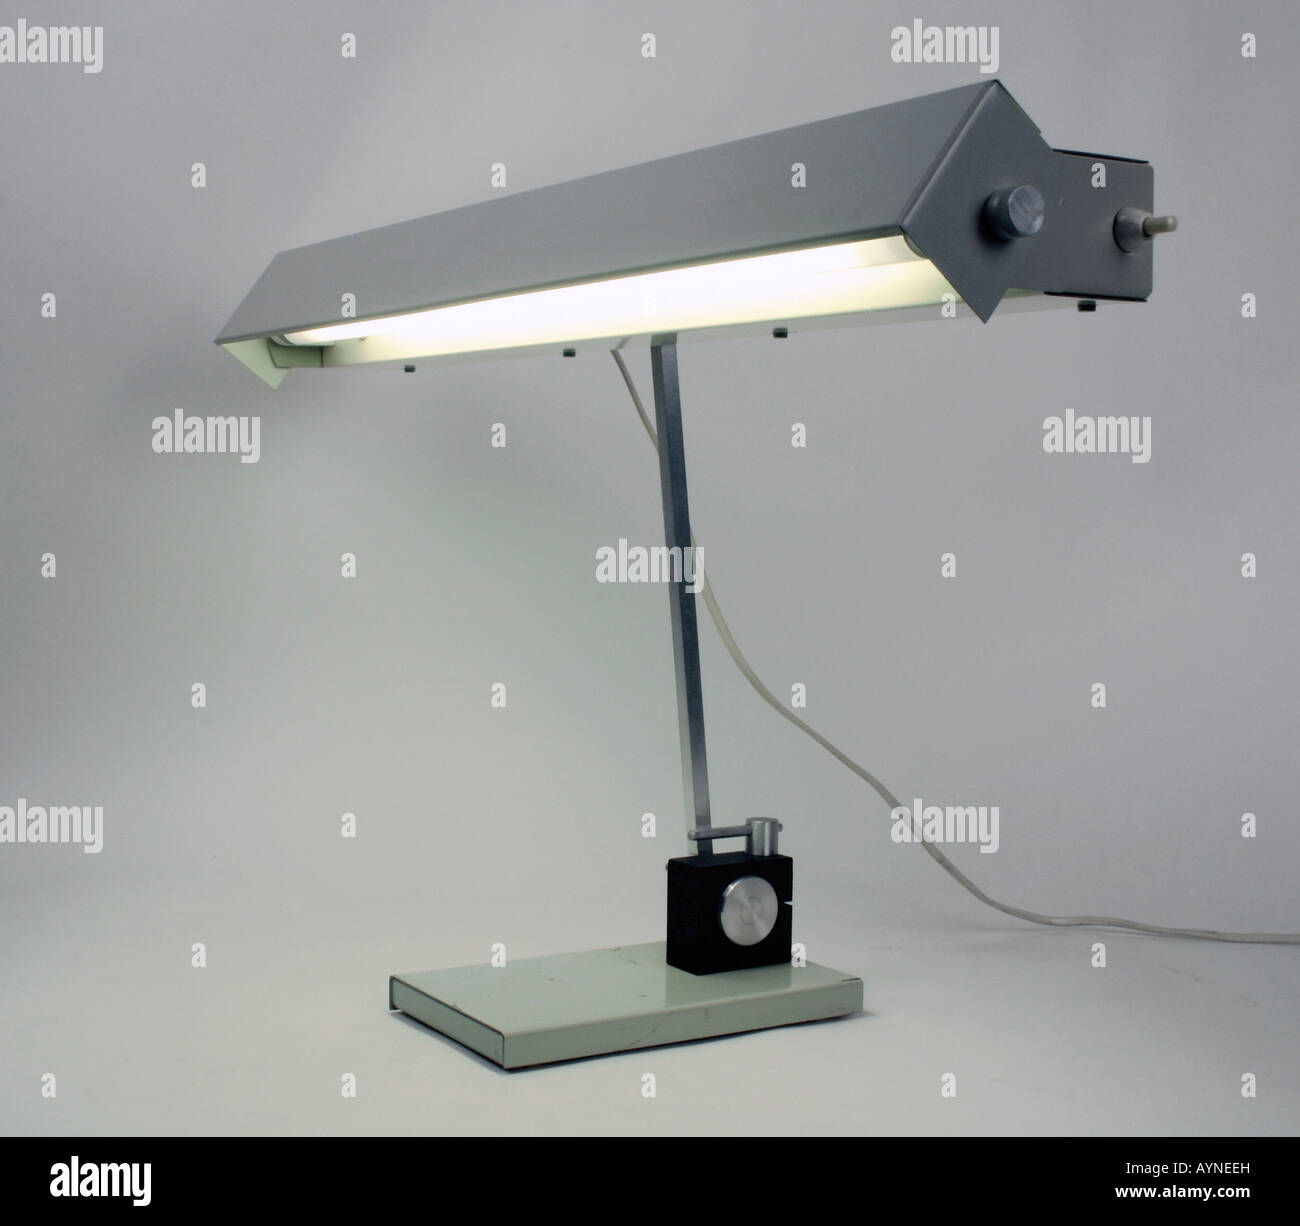 Furniture, Lamps And Light, Adjustable Fluorescent Desk Lamp TL 2020,  Produced By VEB Metealldruecker Halle, GDR, 1970s, Histori